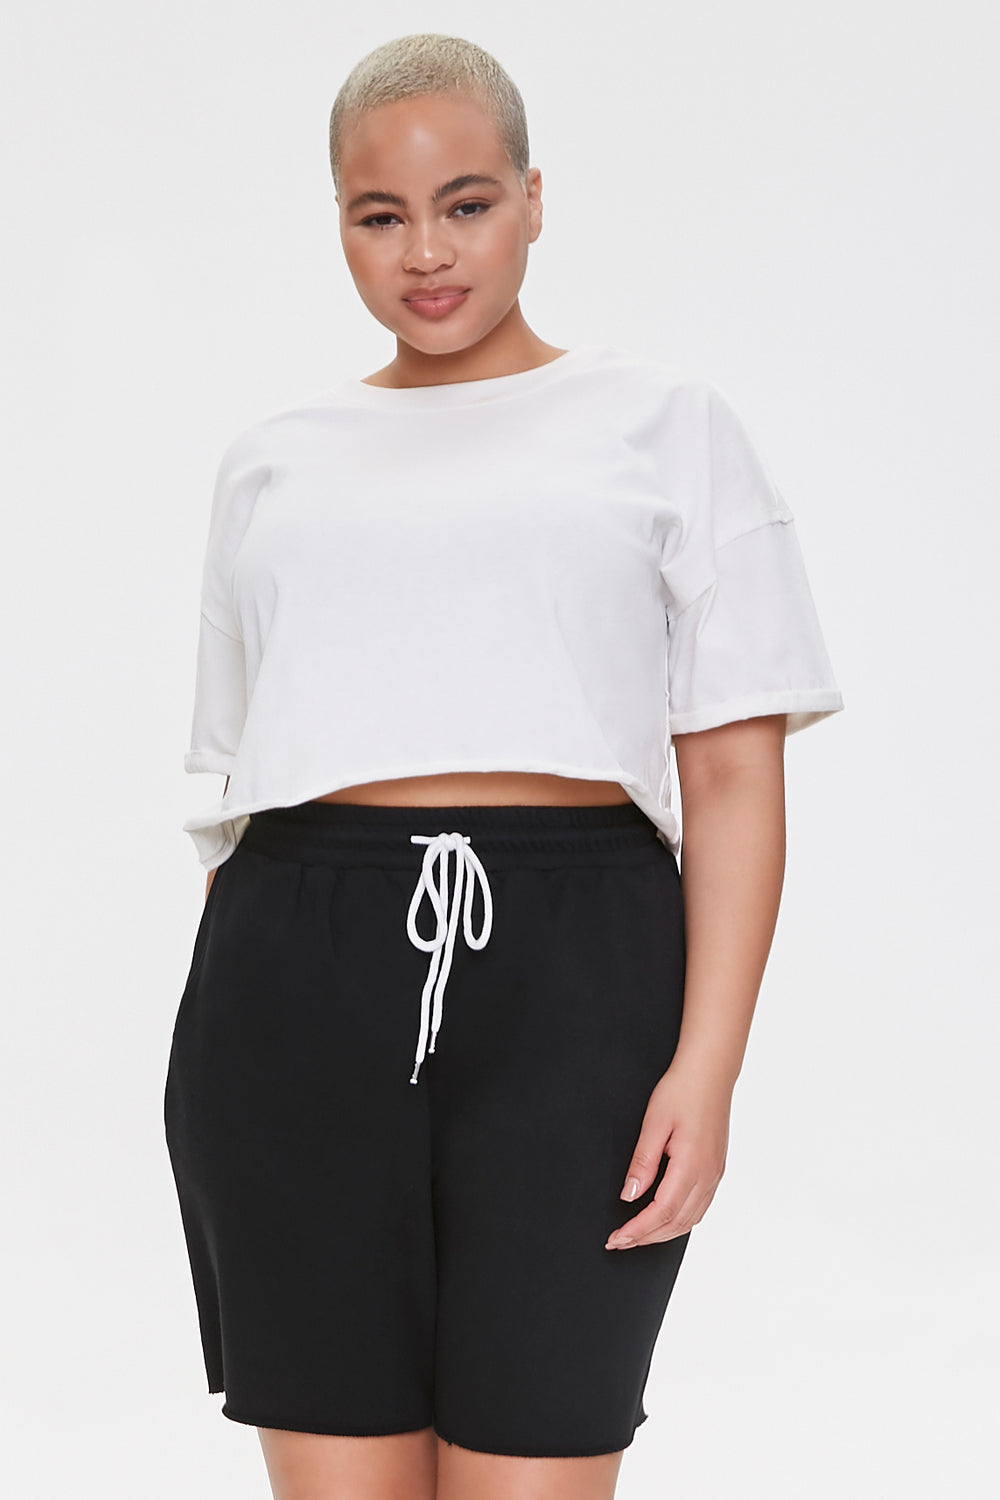 Plus Size Boyfriend Sweatshorts Black